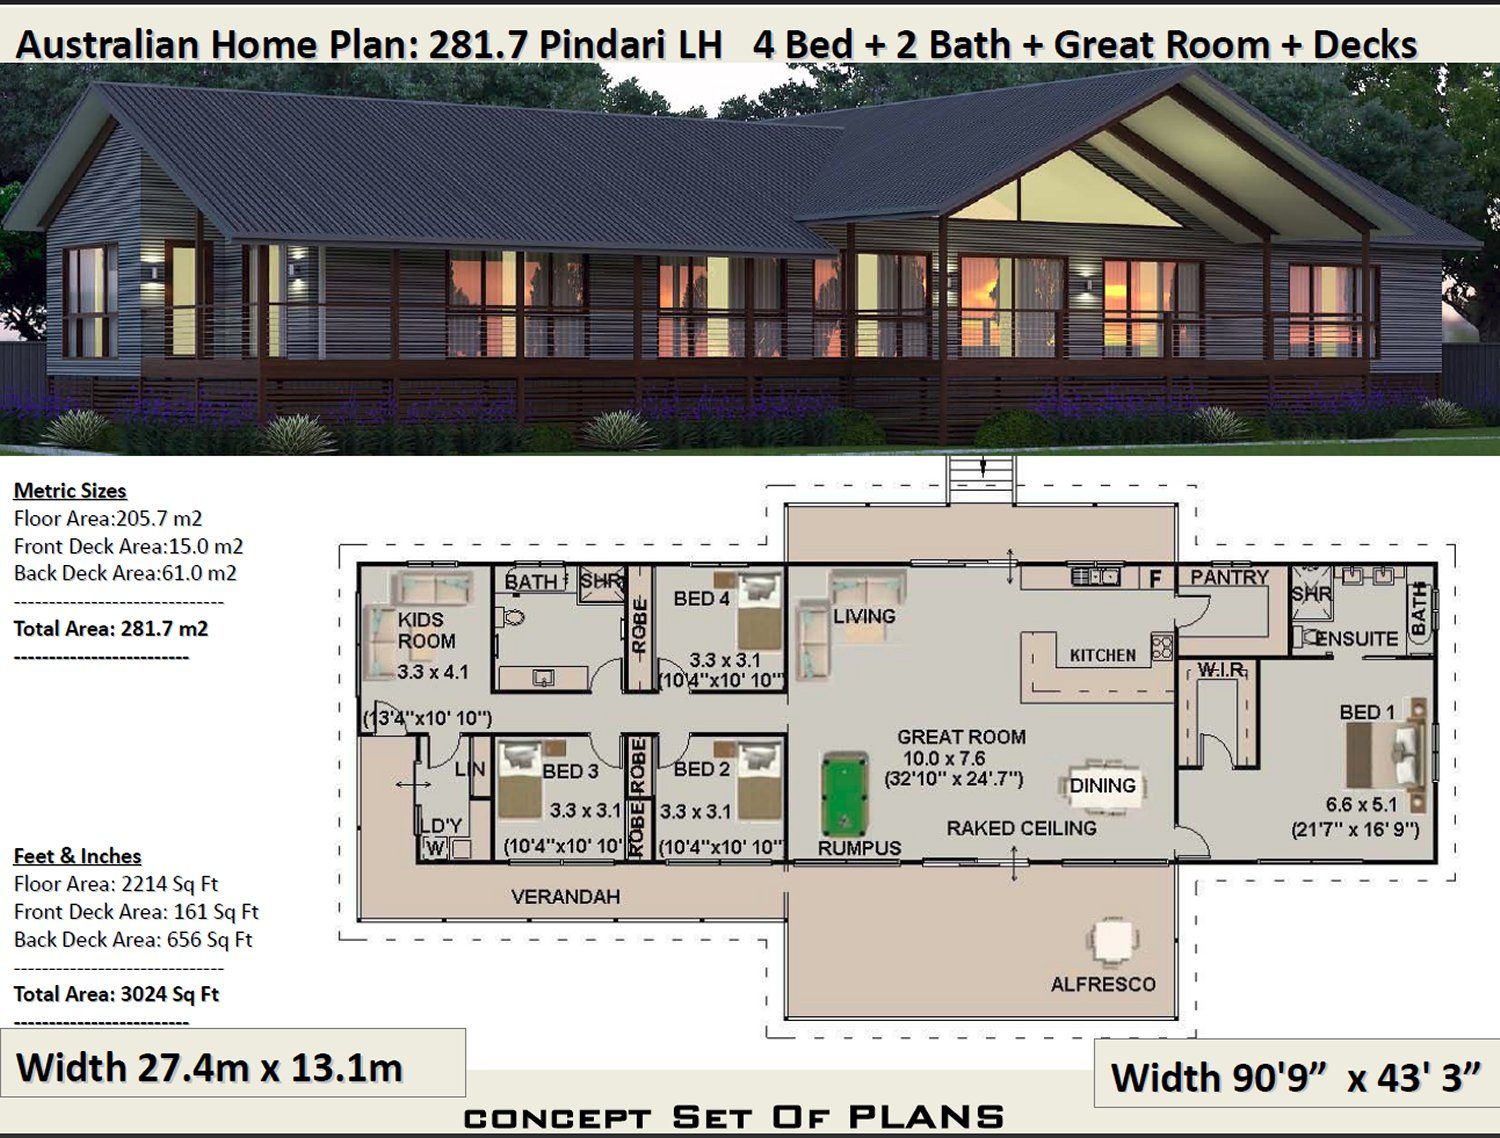 Australian Country Homes 281 7m2 Pindara Design Preliminary House Plans Country Style House Plans House Plans Australia House Plans For Sale